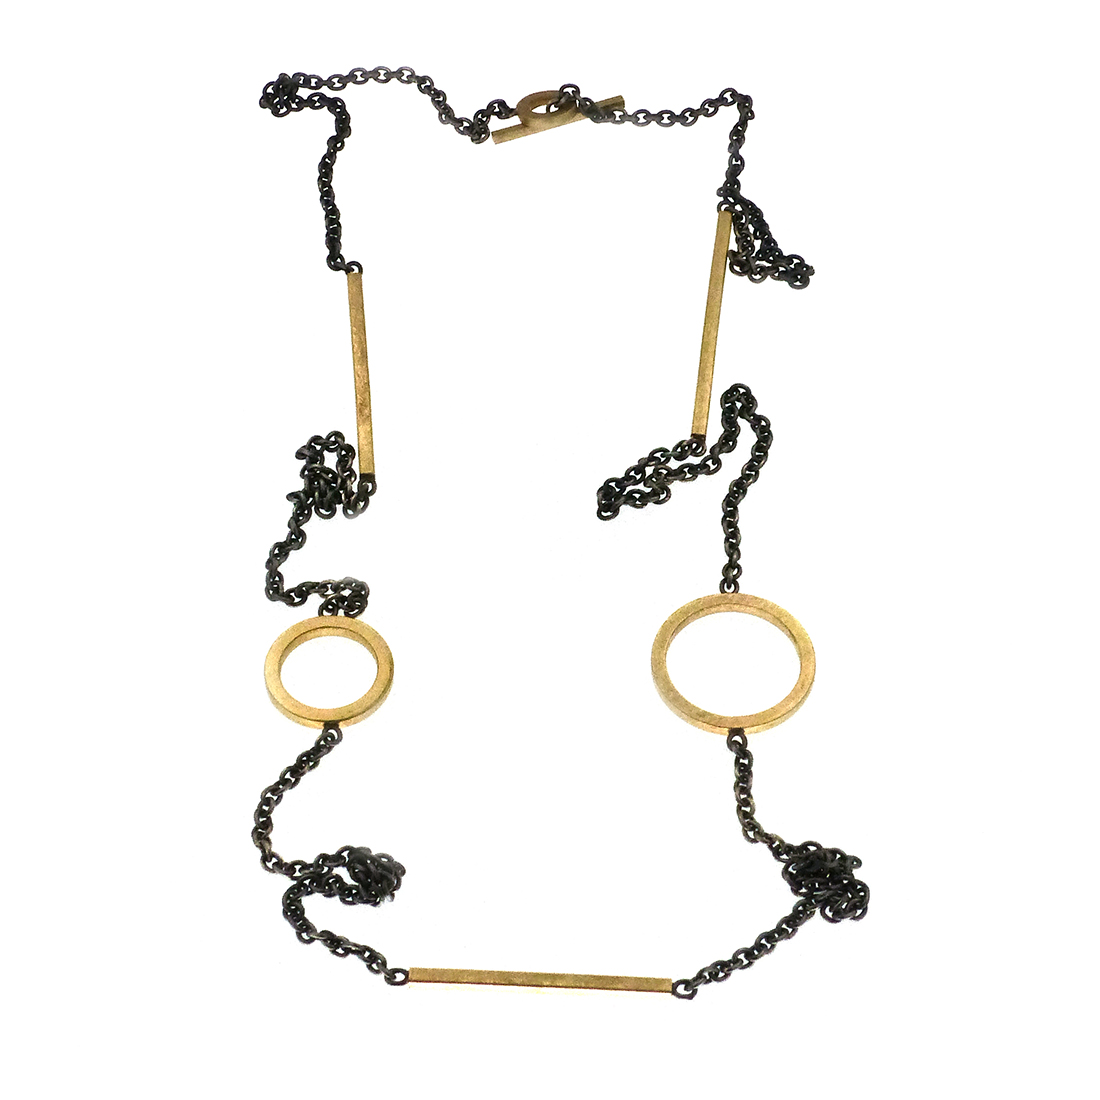 Necklace with circles and bars